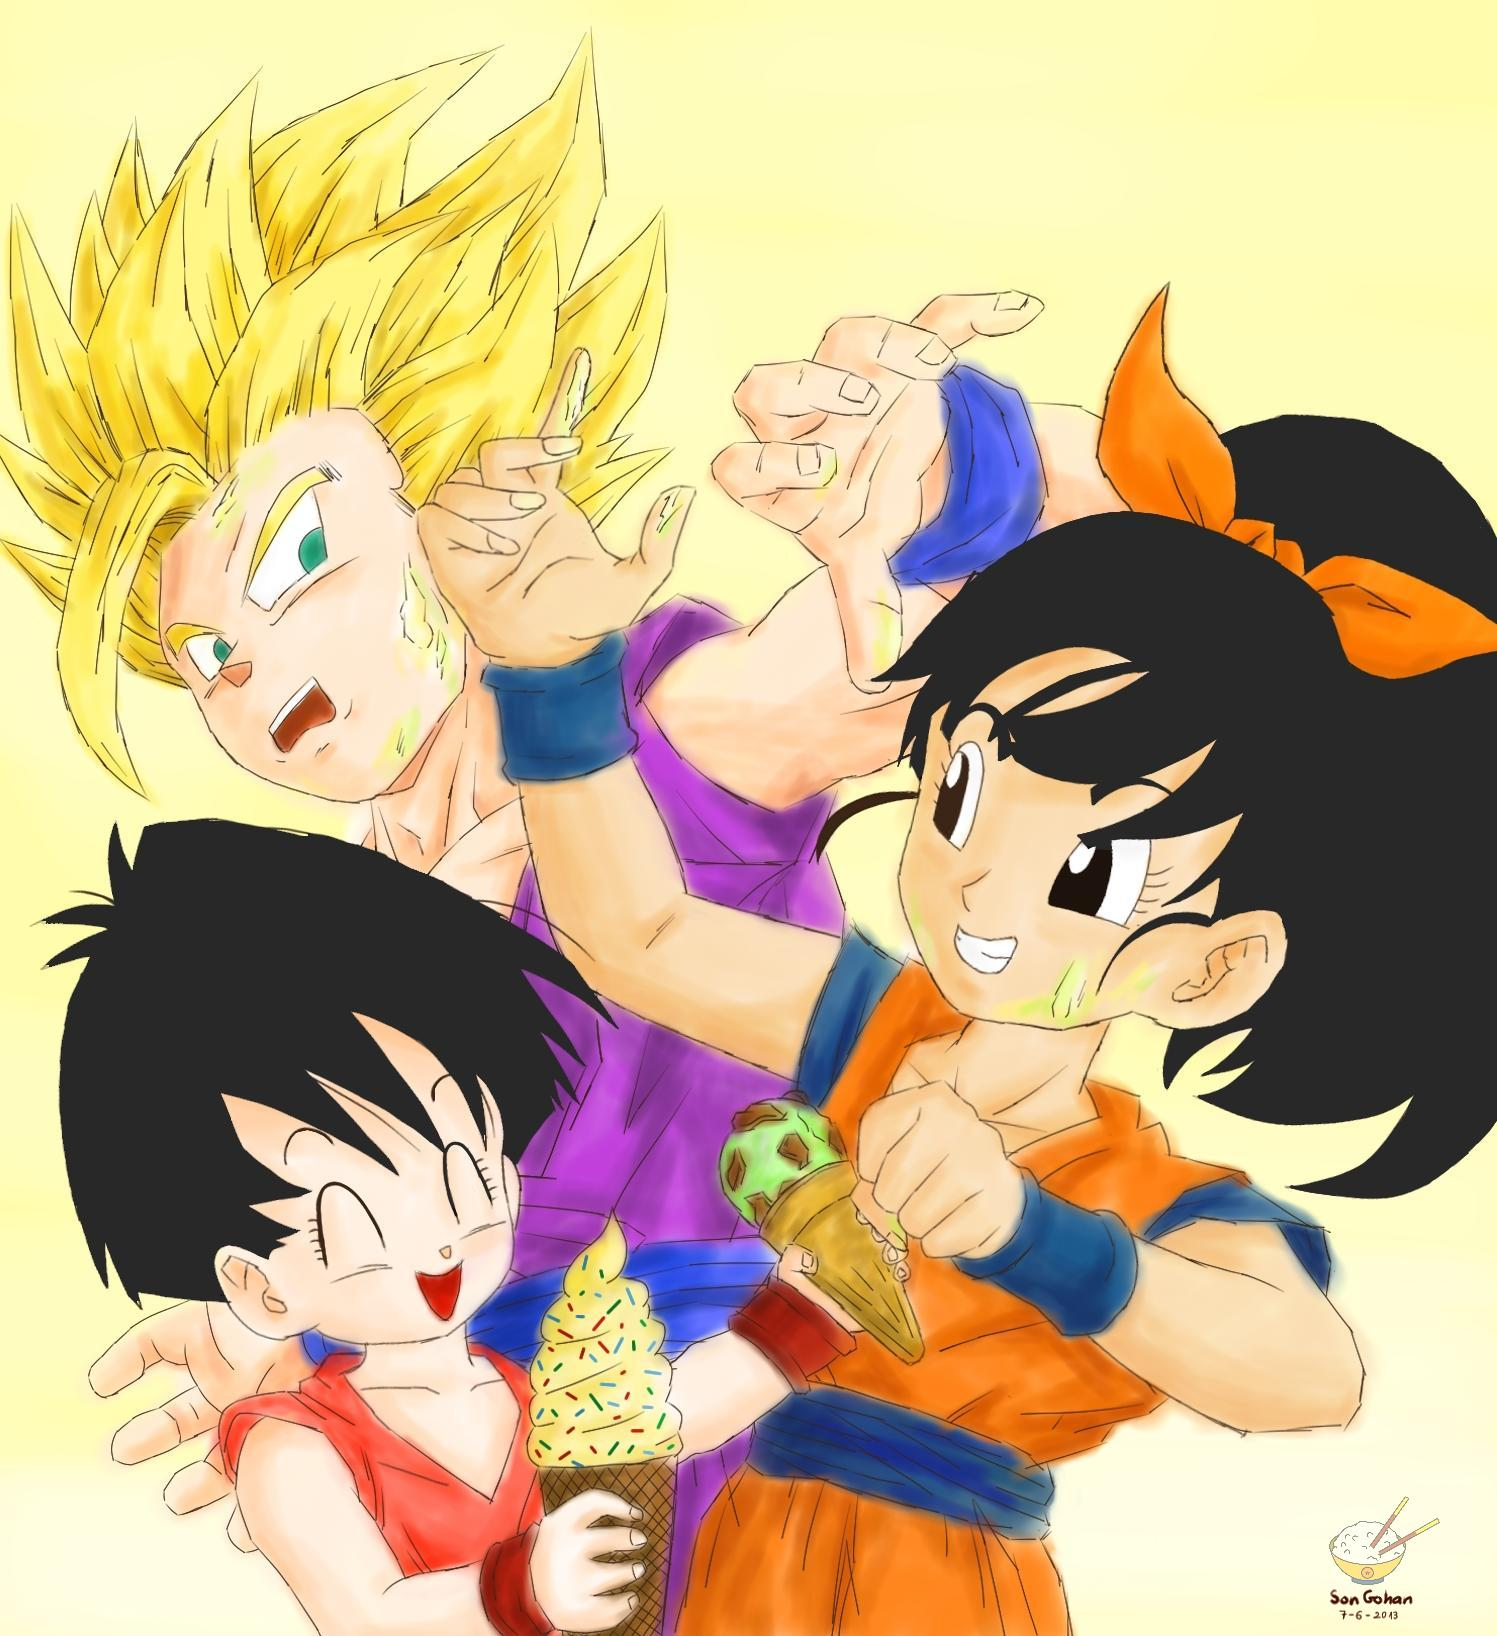 gohan and videl having teen